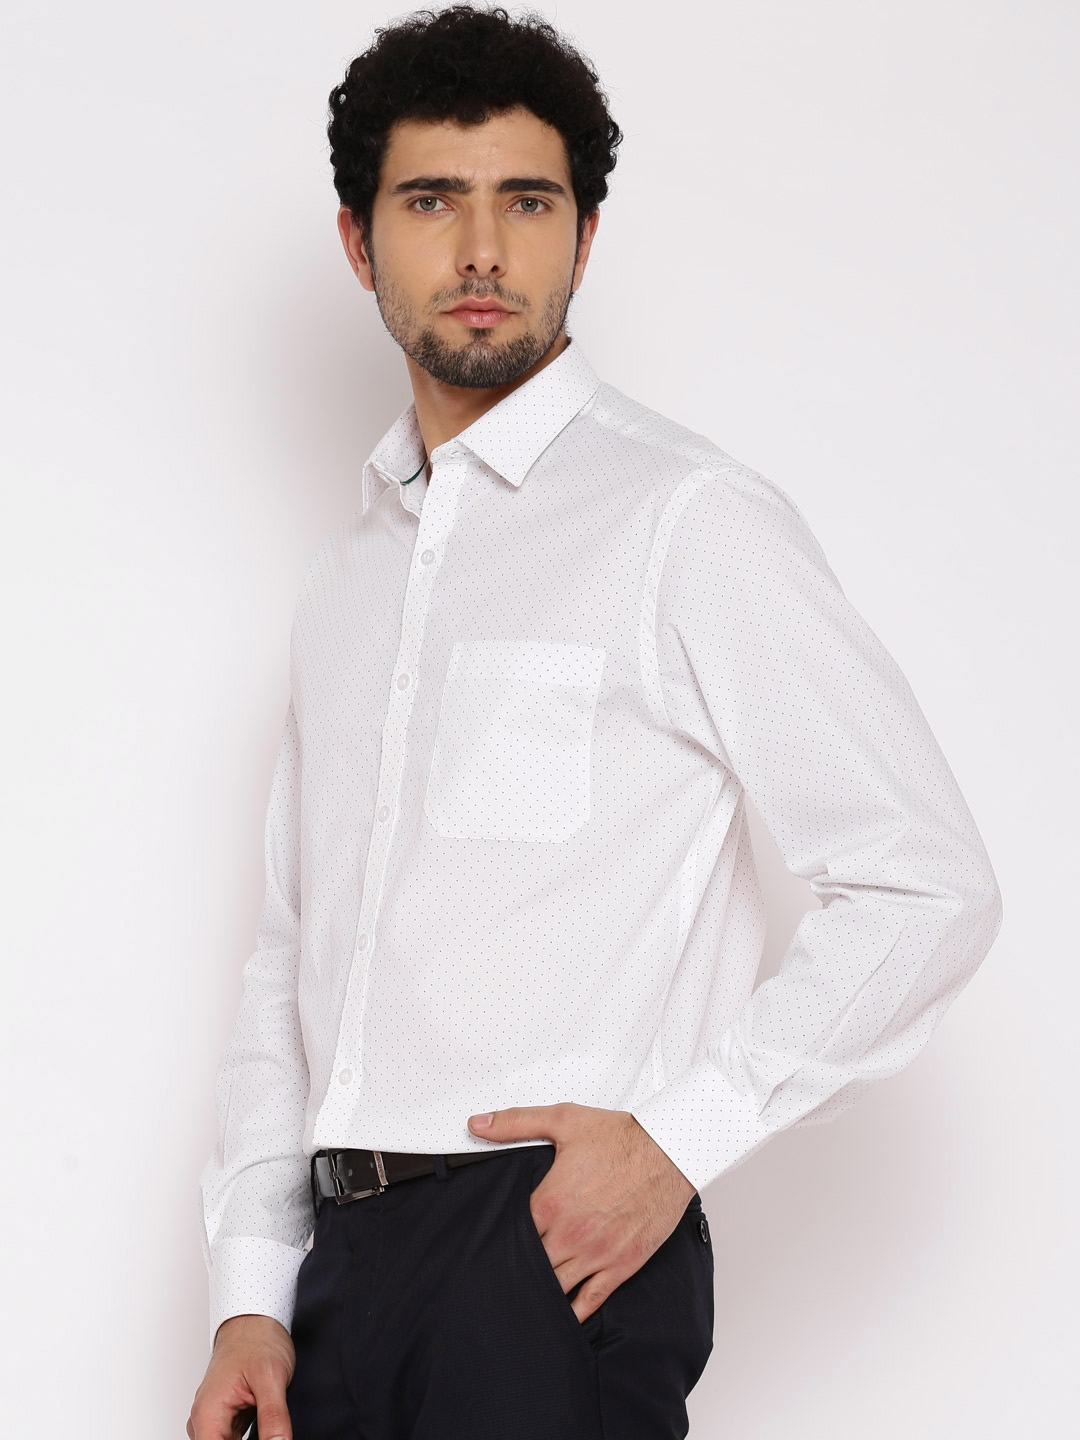 393b7988841 Buy John Players White Printed Slim Fit Formal Shirt - Shirts for ...